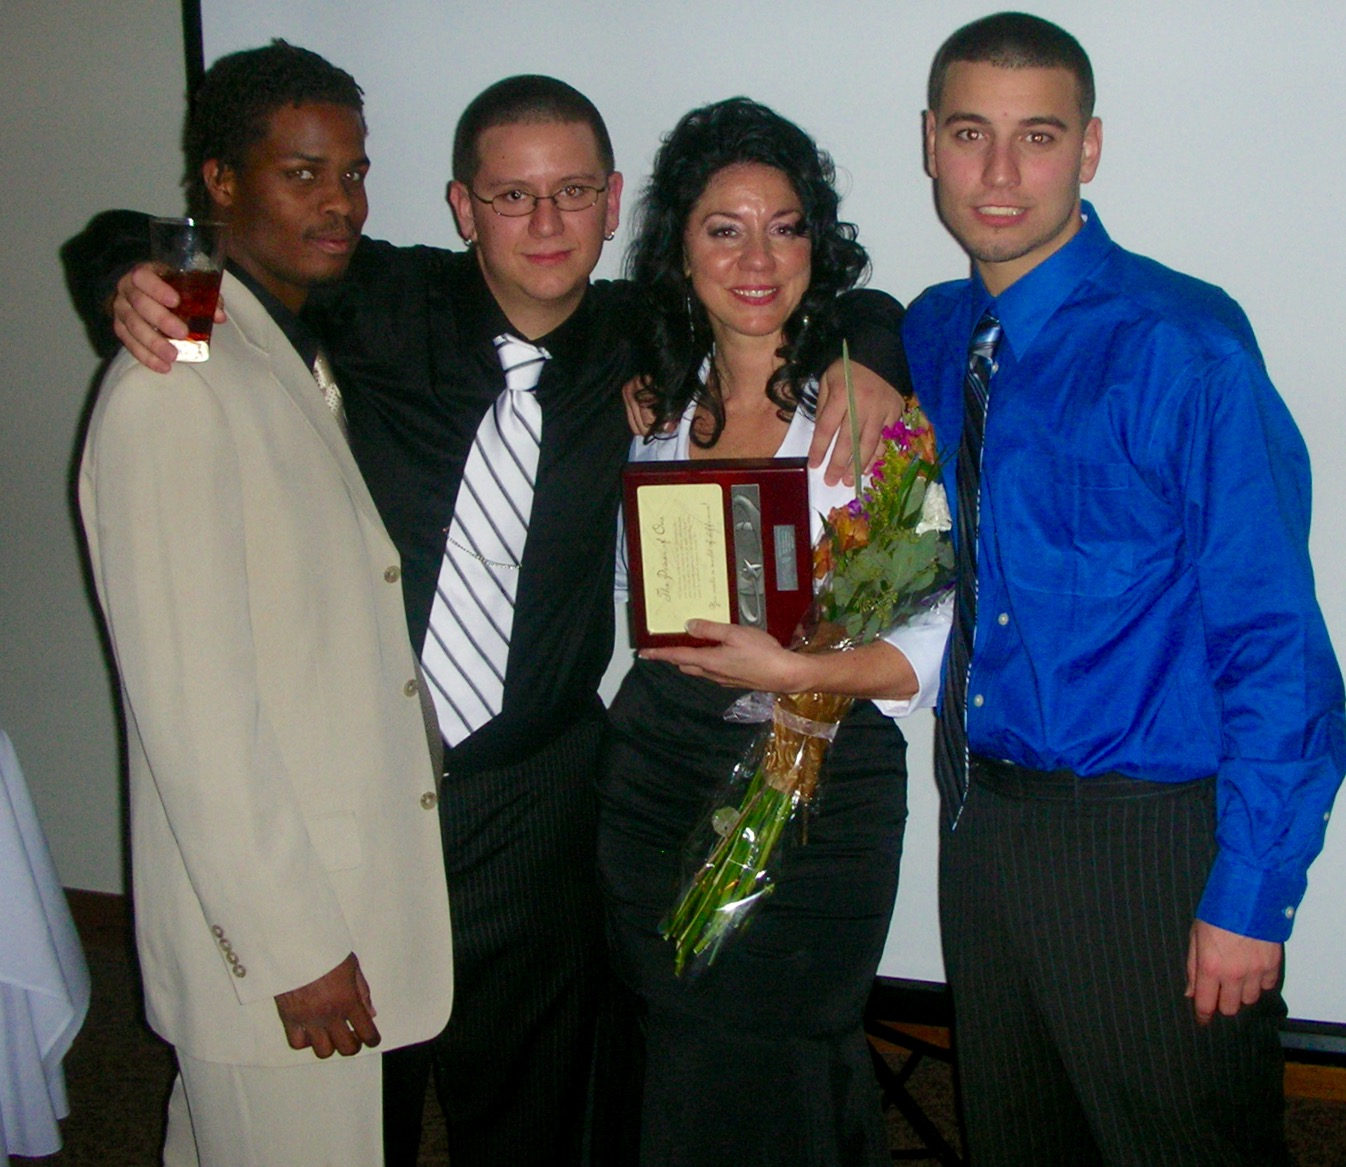 Susan at Sprouts 25th Anniversary receiving The Power of One Award with sons Marvin Neal, Nicholas Ferraro and Anthony Ferraro.